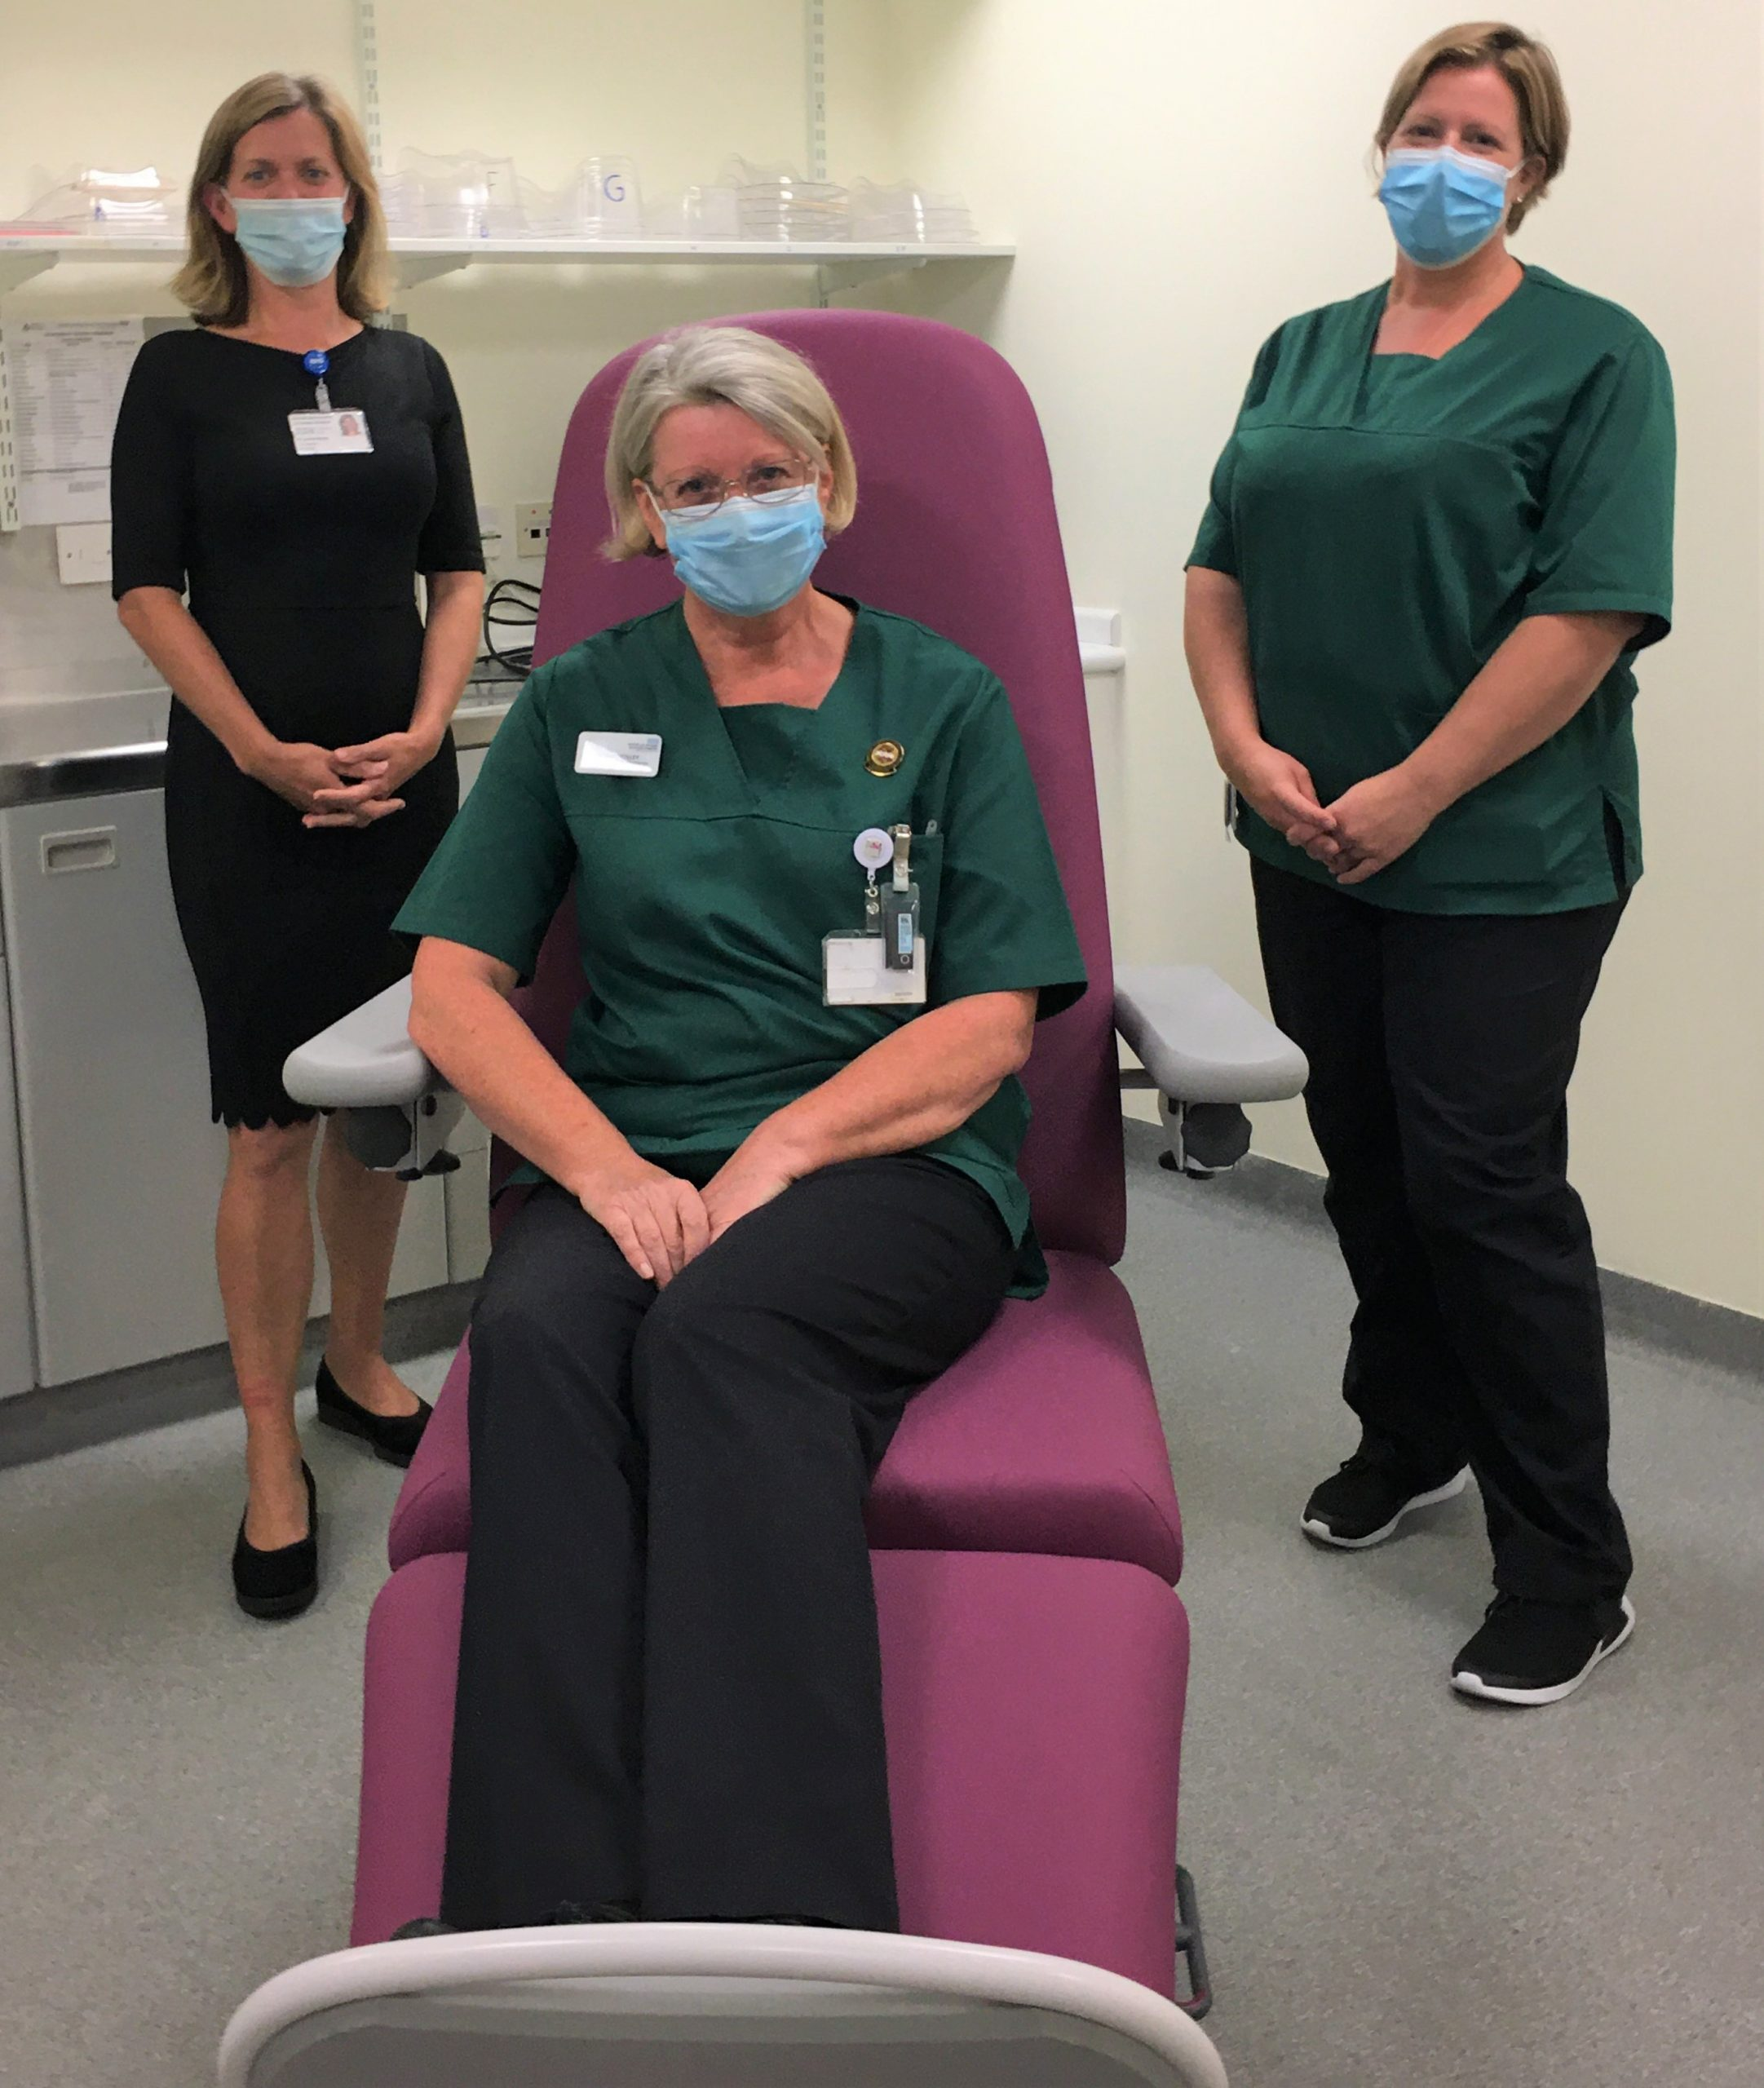 Skin cancer treatment chair in place after radiographer's cycle challenge